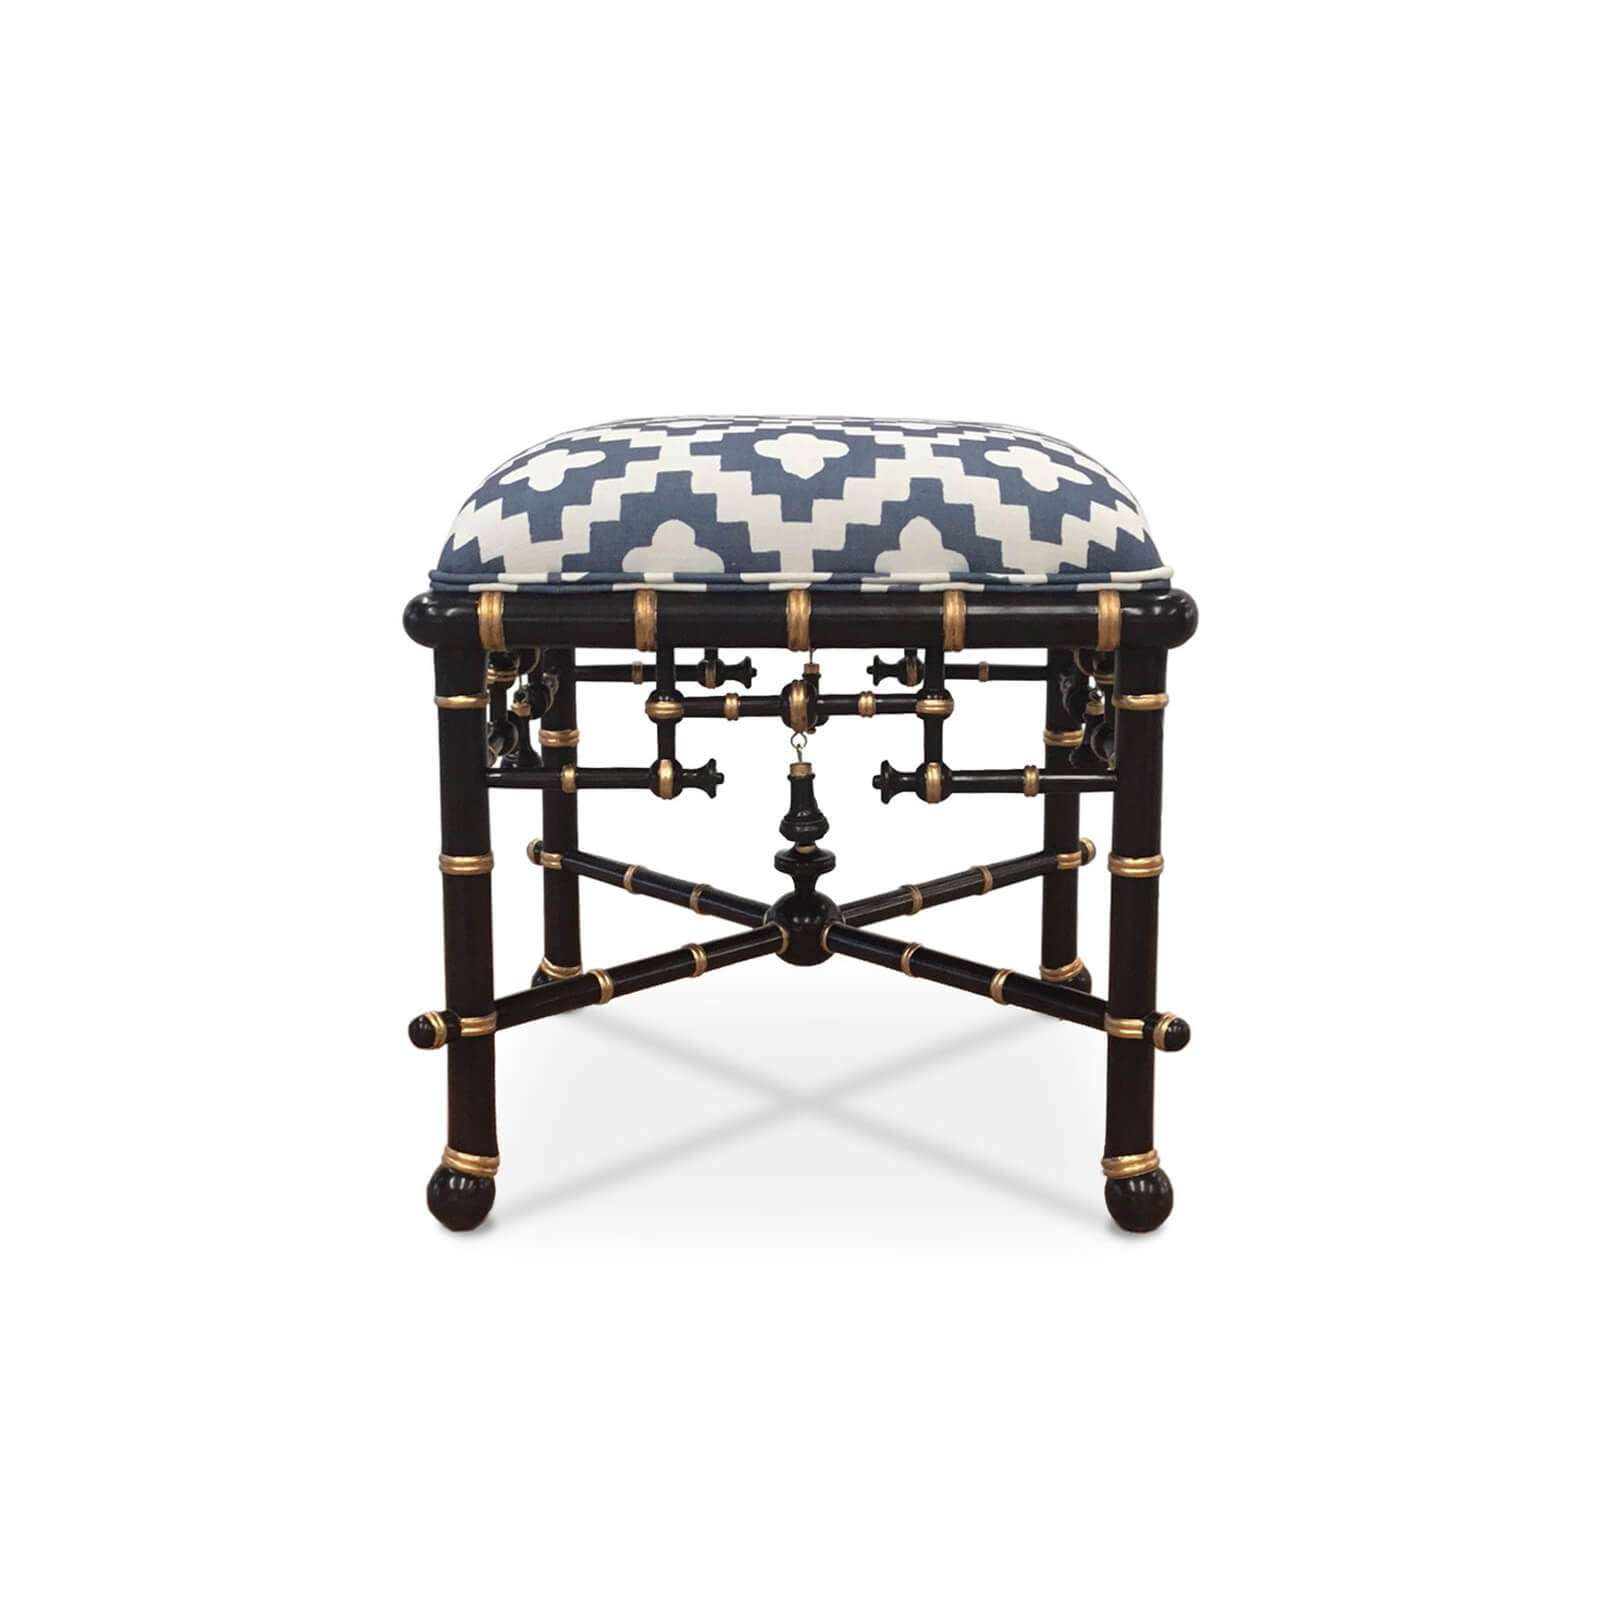 MANDARIN OTTOMAN CUSTOM 3 - STUART MEMBERY HOME COLLECTION